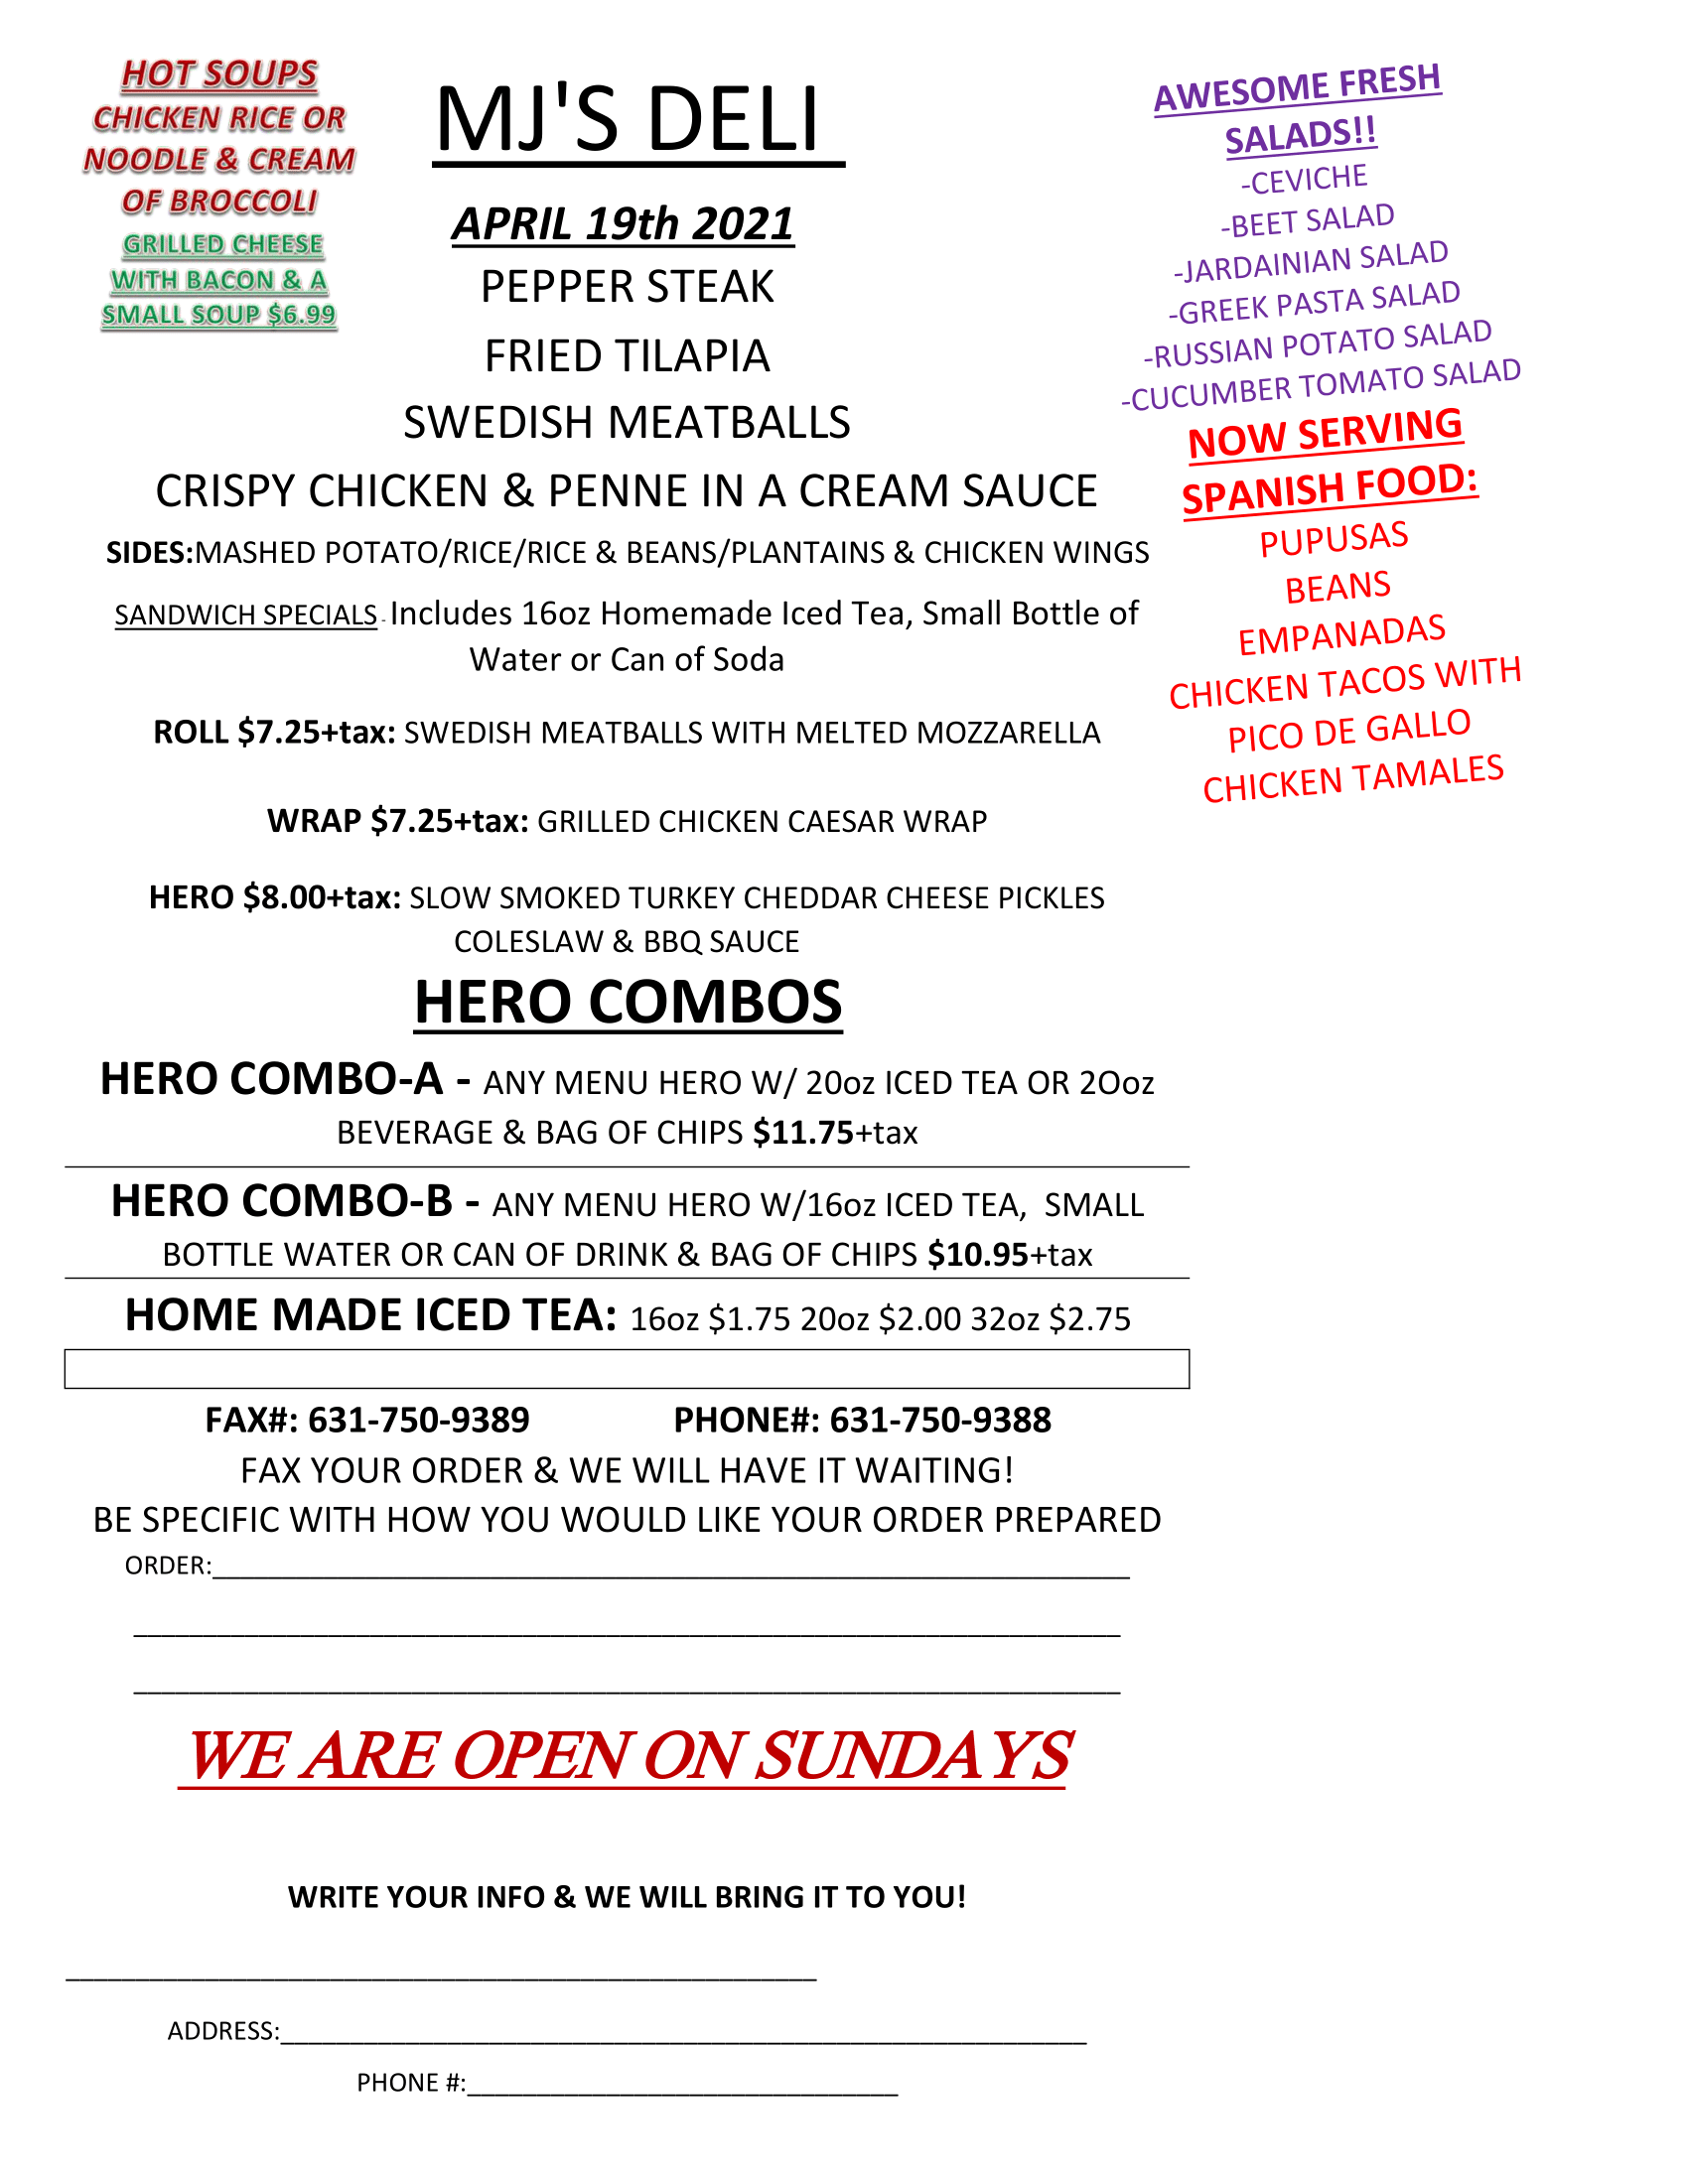 Menu specials for April 19th. Readable PDF available by clicking image or button.